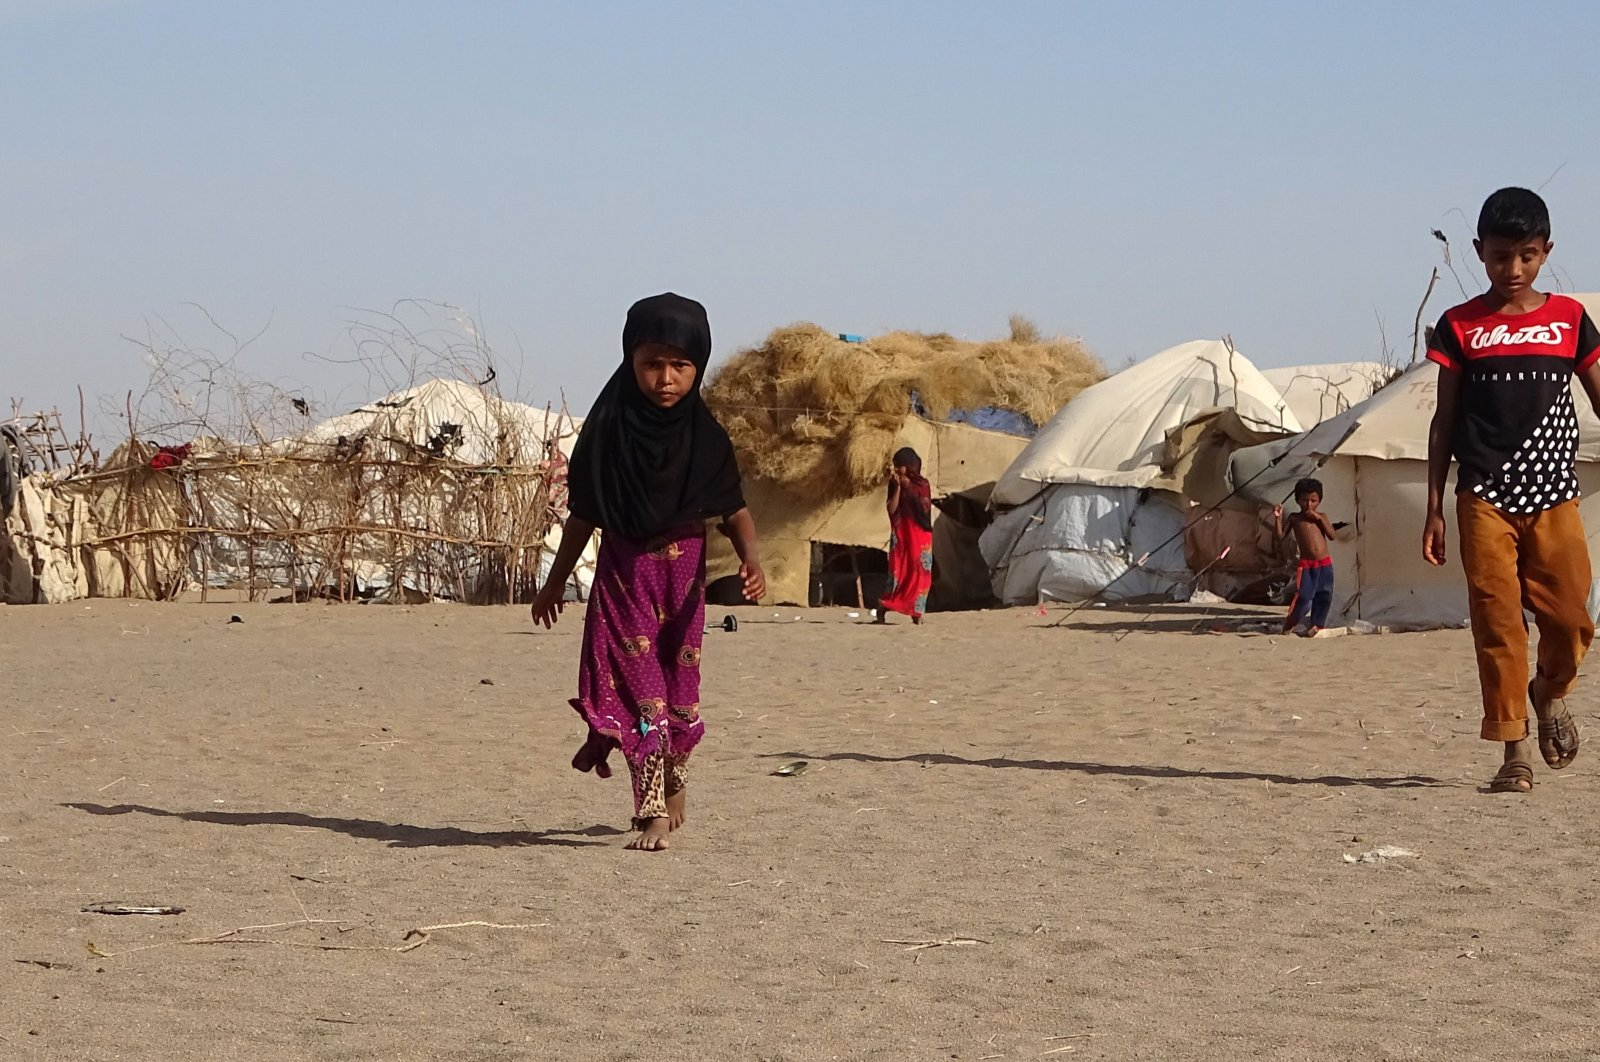 This May 6, 2020, file photo shows children walking past tents at a displaced persons camp in the Khokha district of Hodeida province, western Yemen. (AFP Photo)